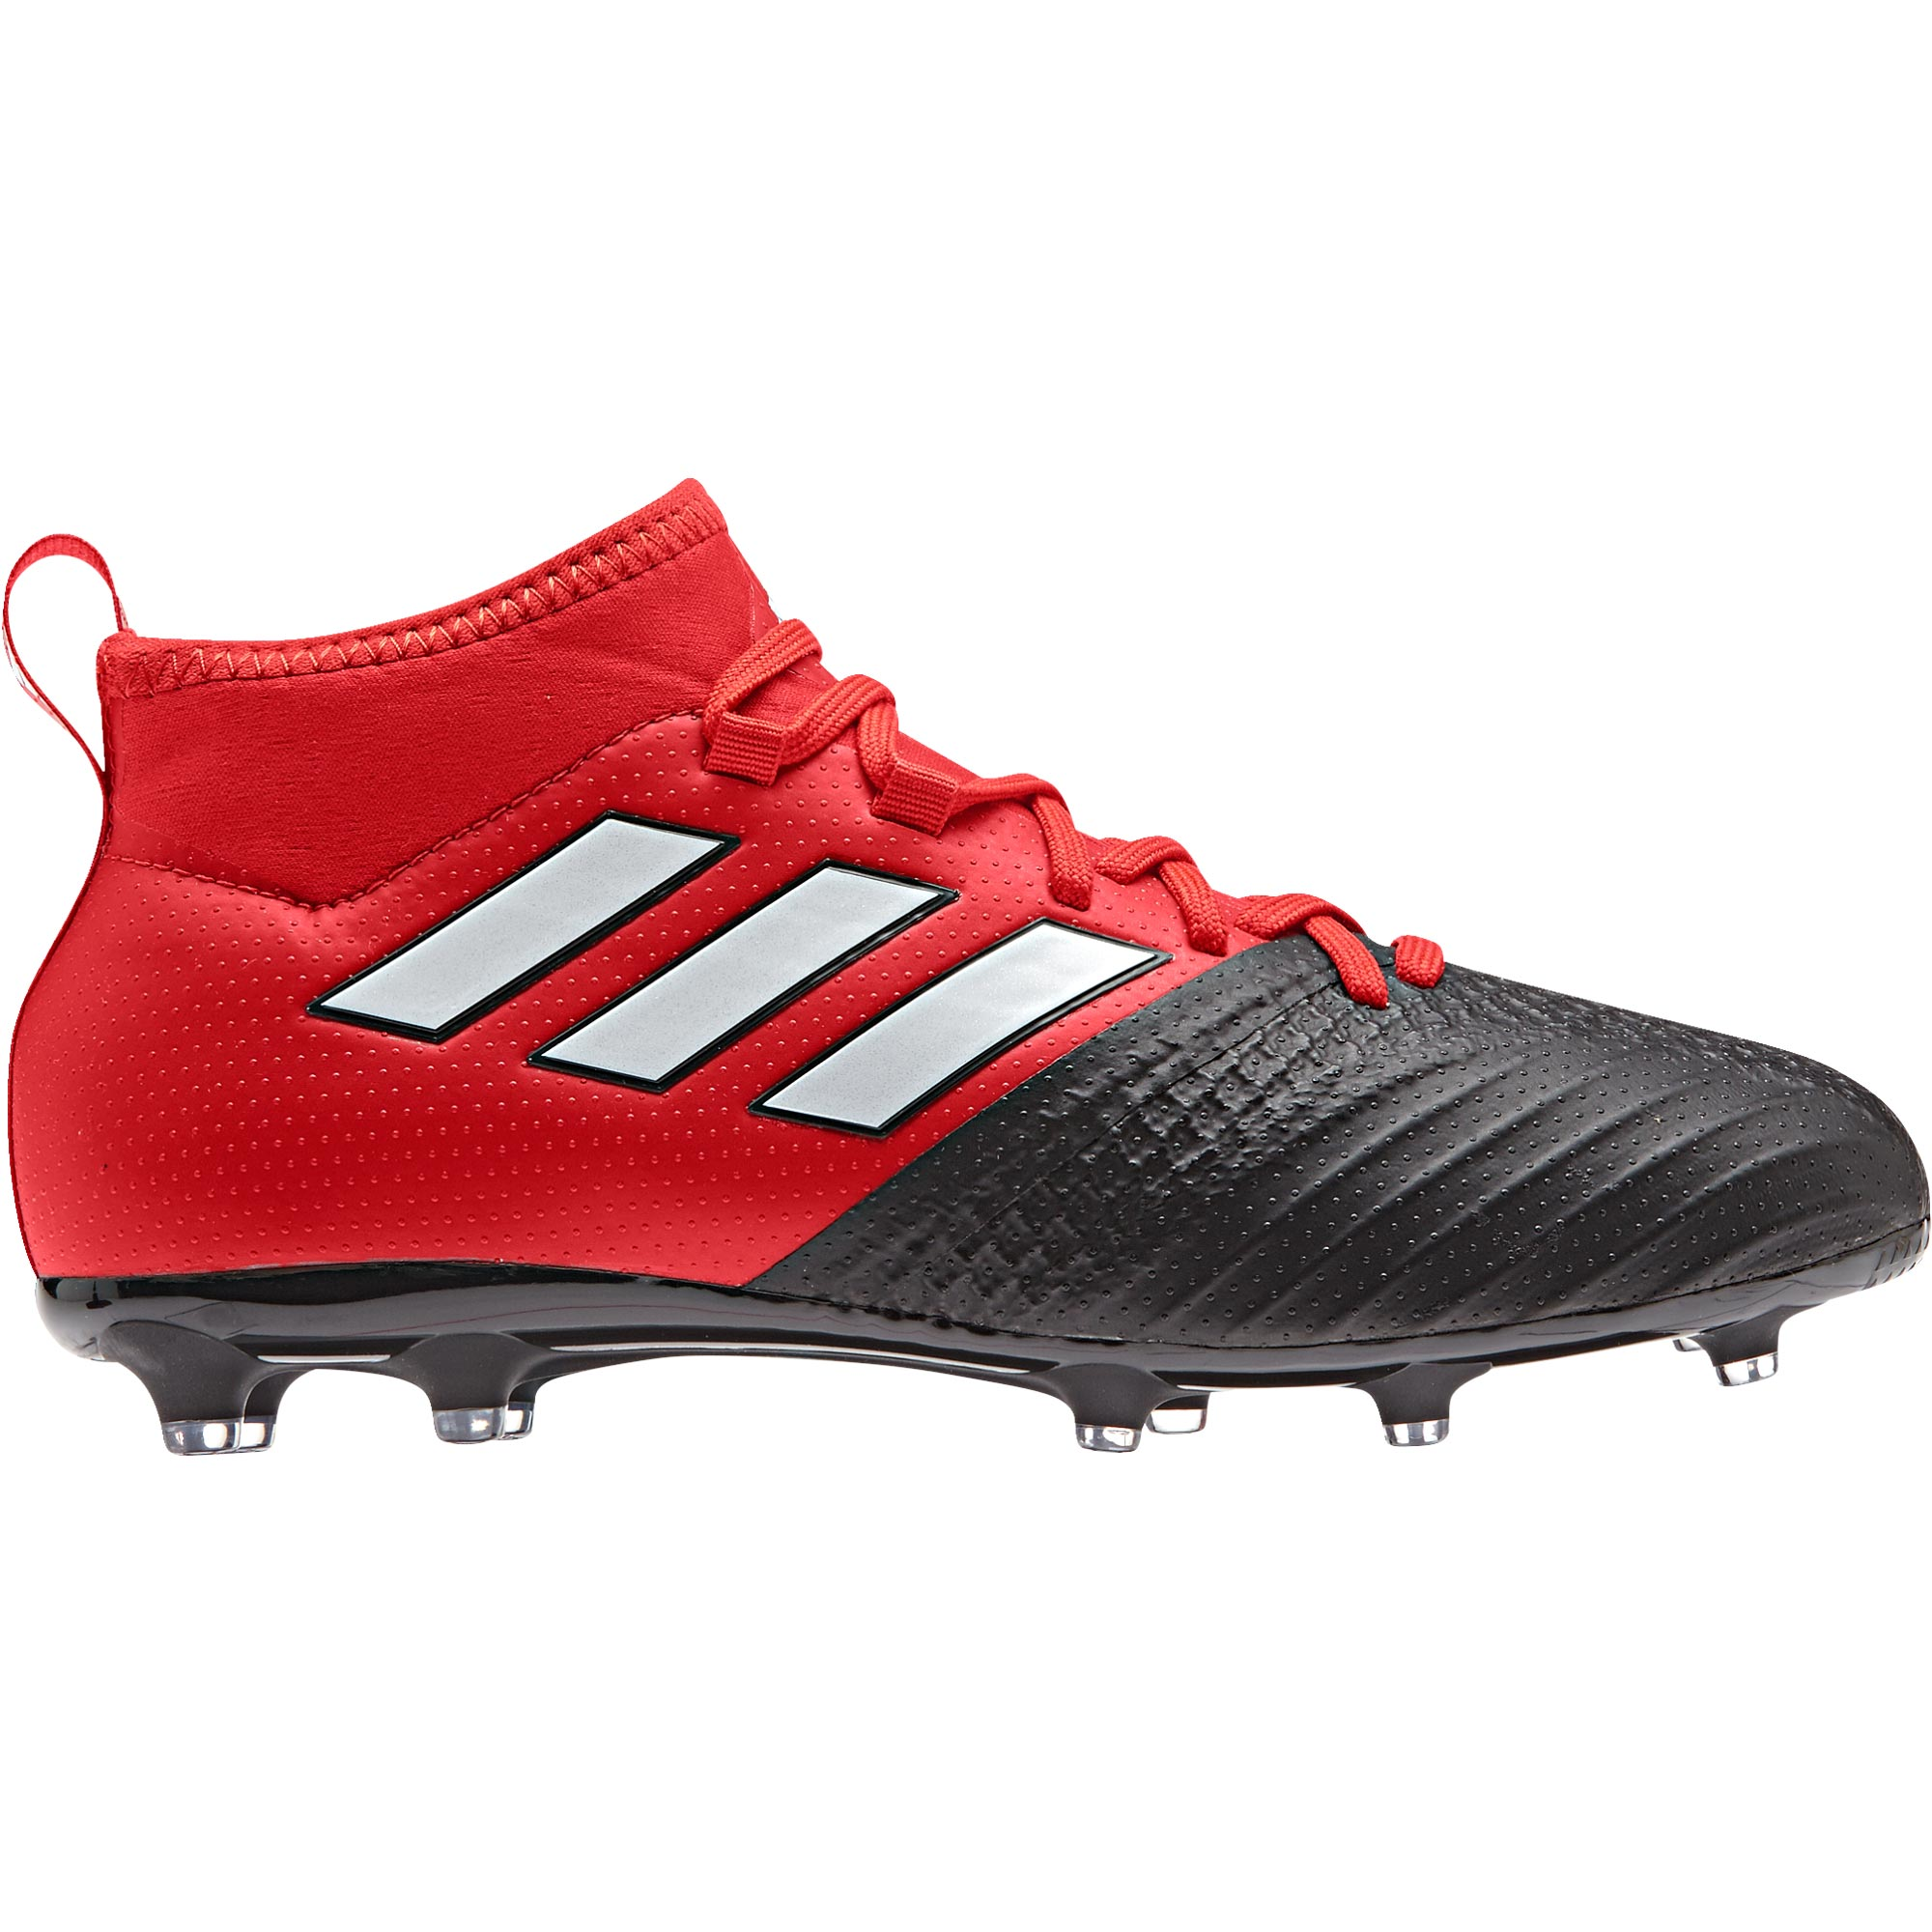 Image of adidas Ace 17.1 Firm Ground Football Boots - Red/White/Core Black - Ki